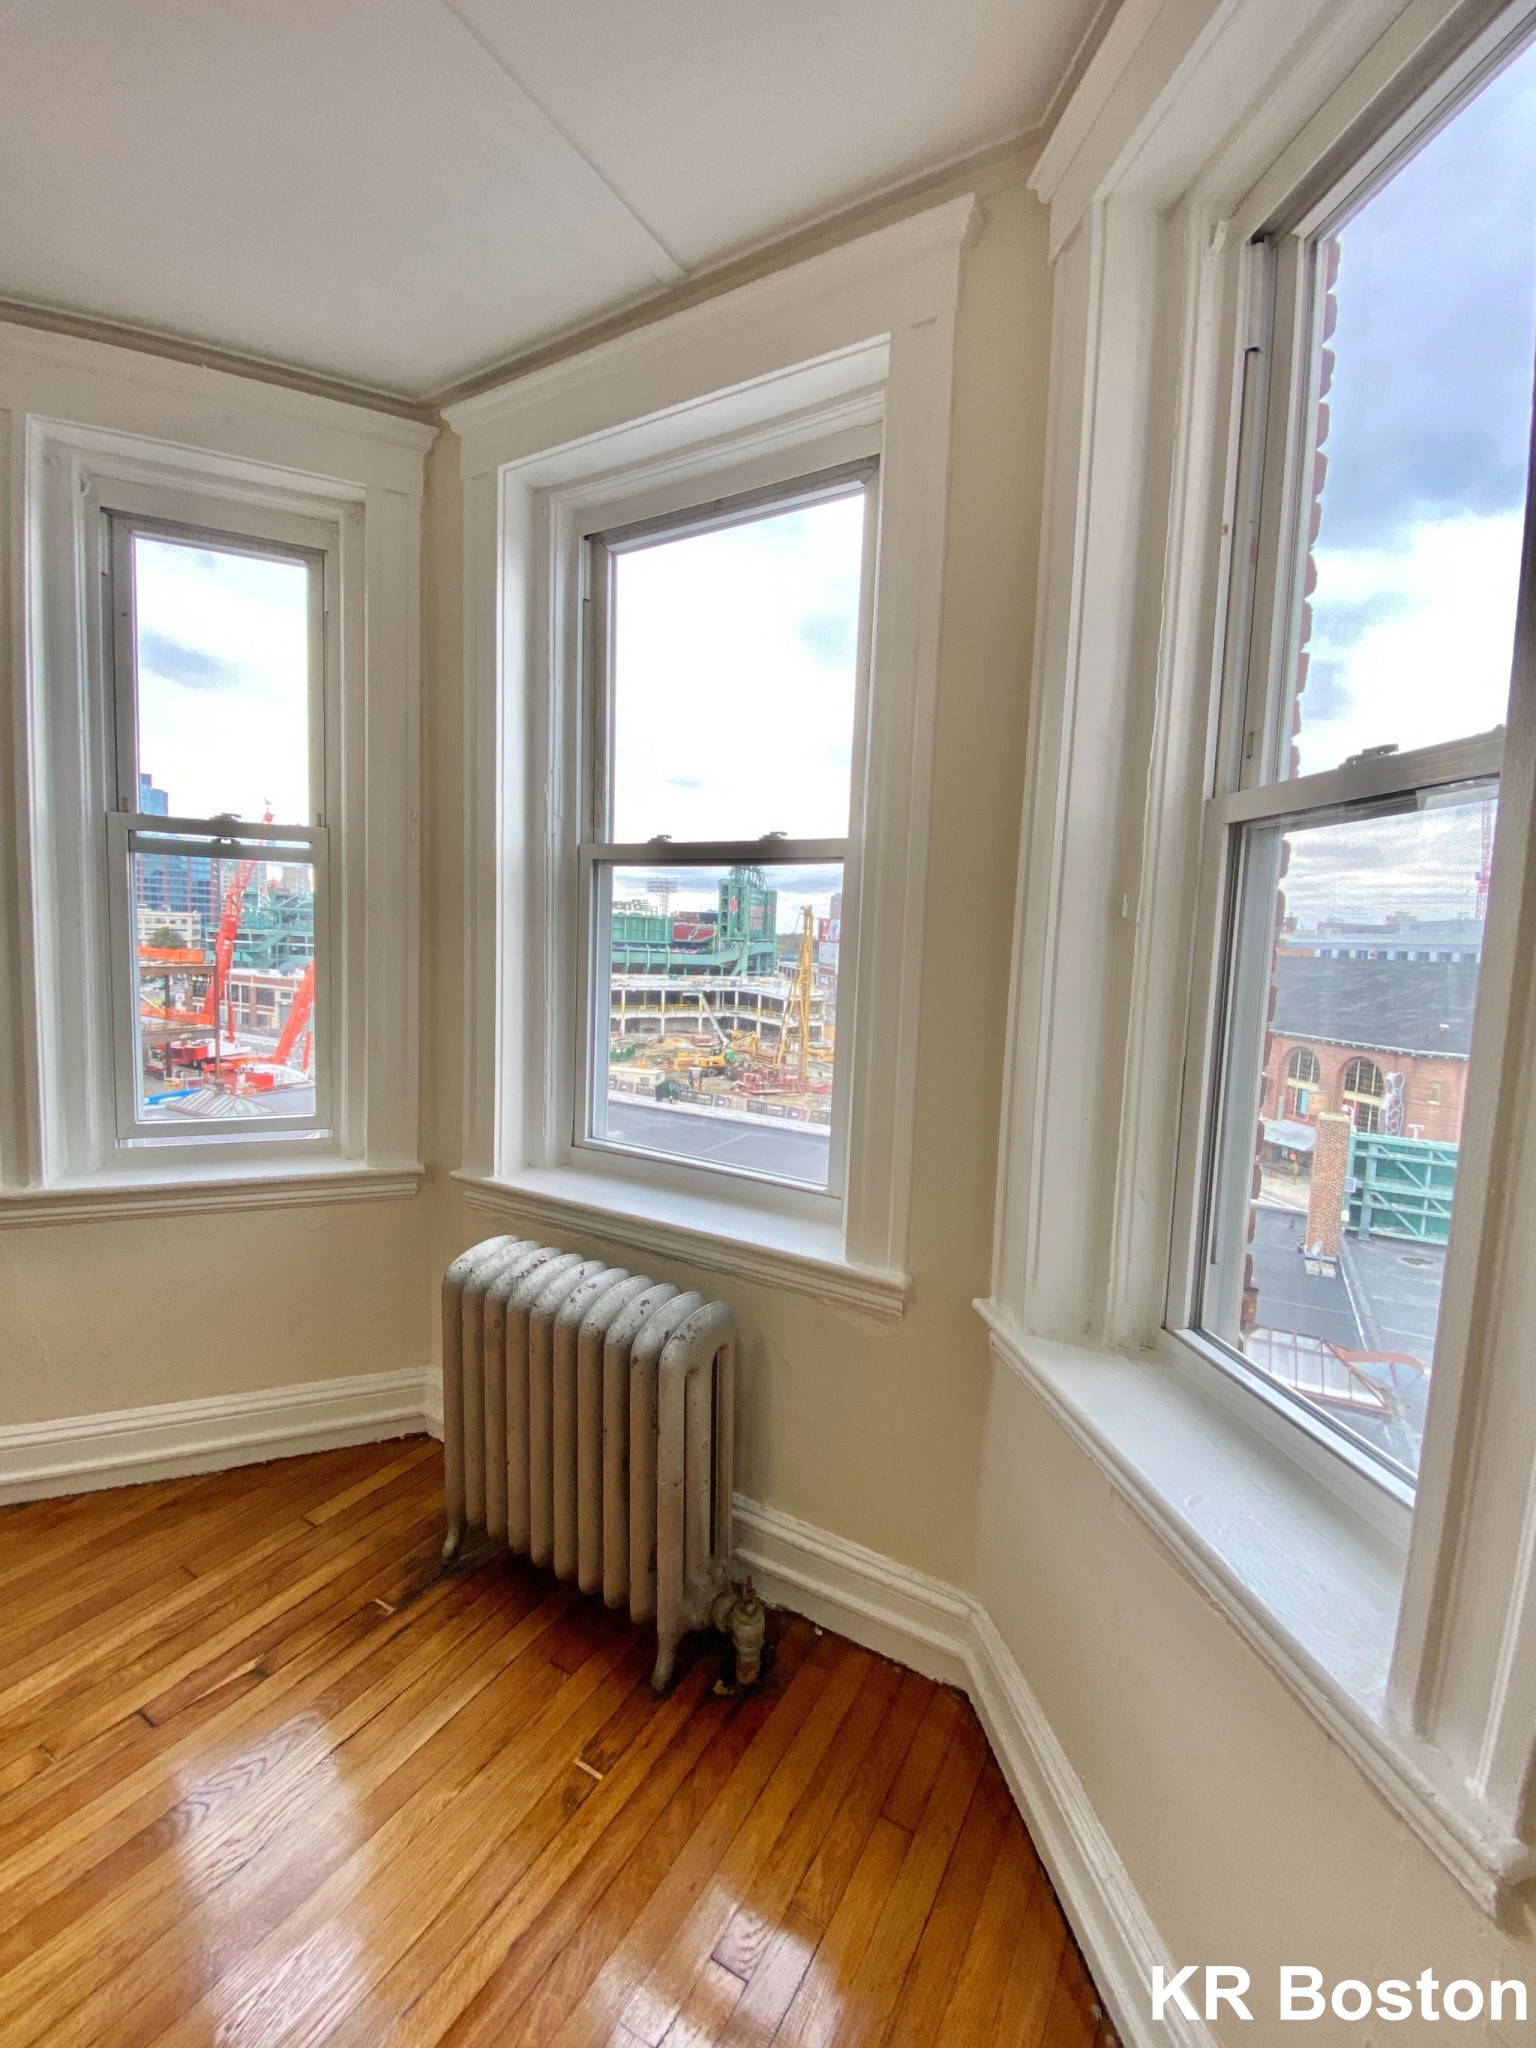 Studio, 1 Bath apartment in Boston, Fenway for $1,475